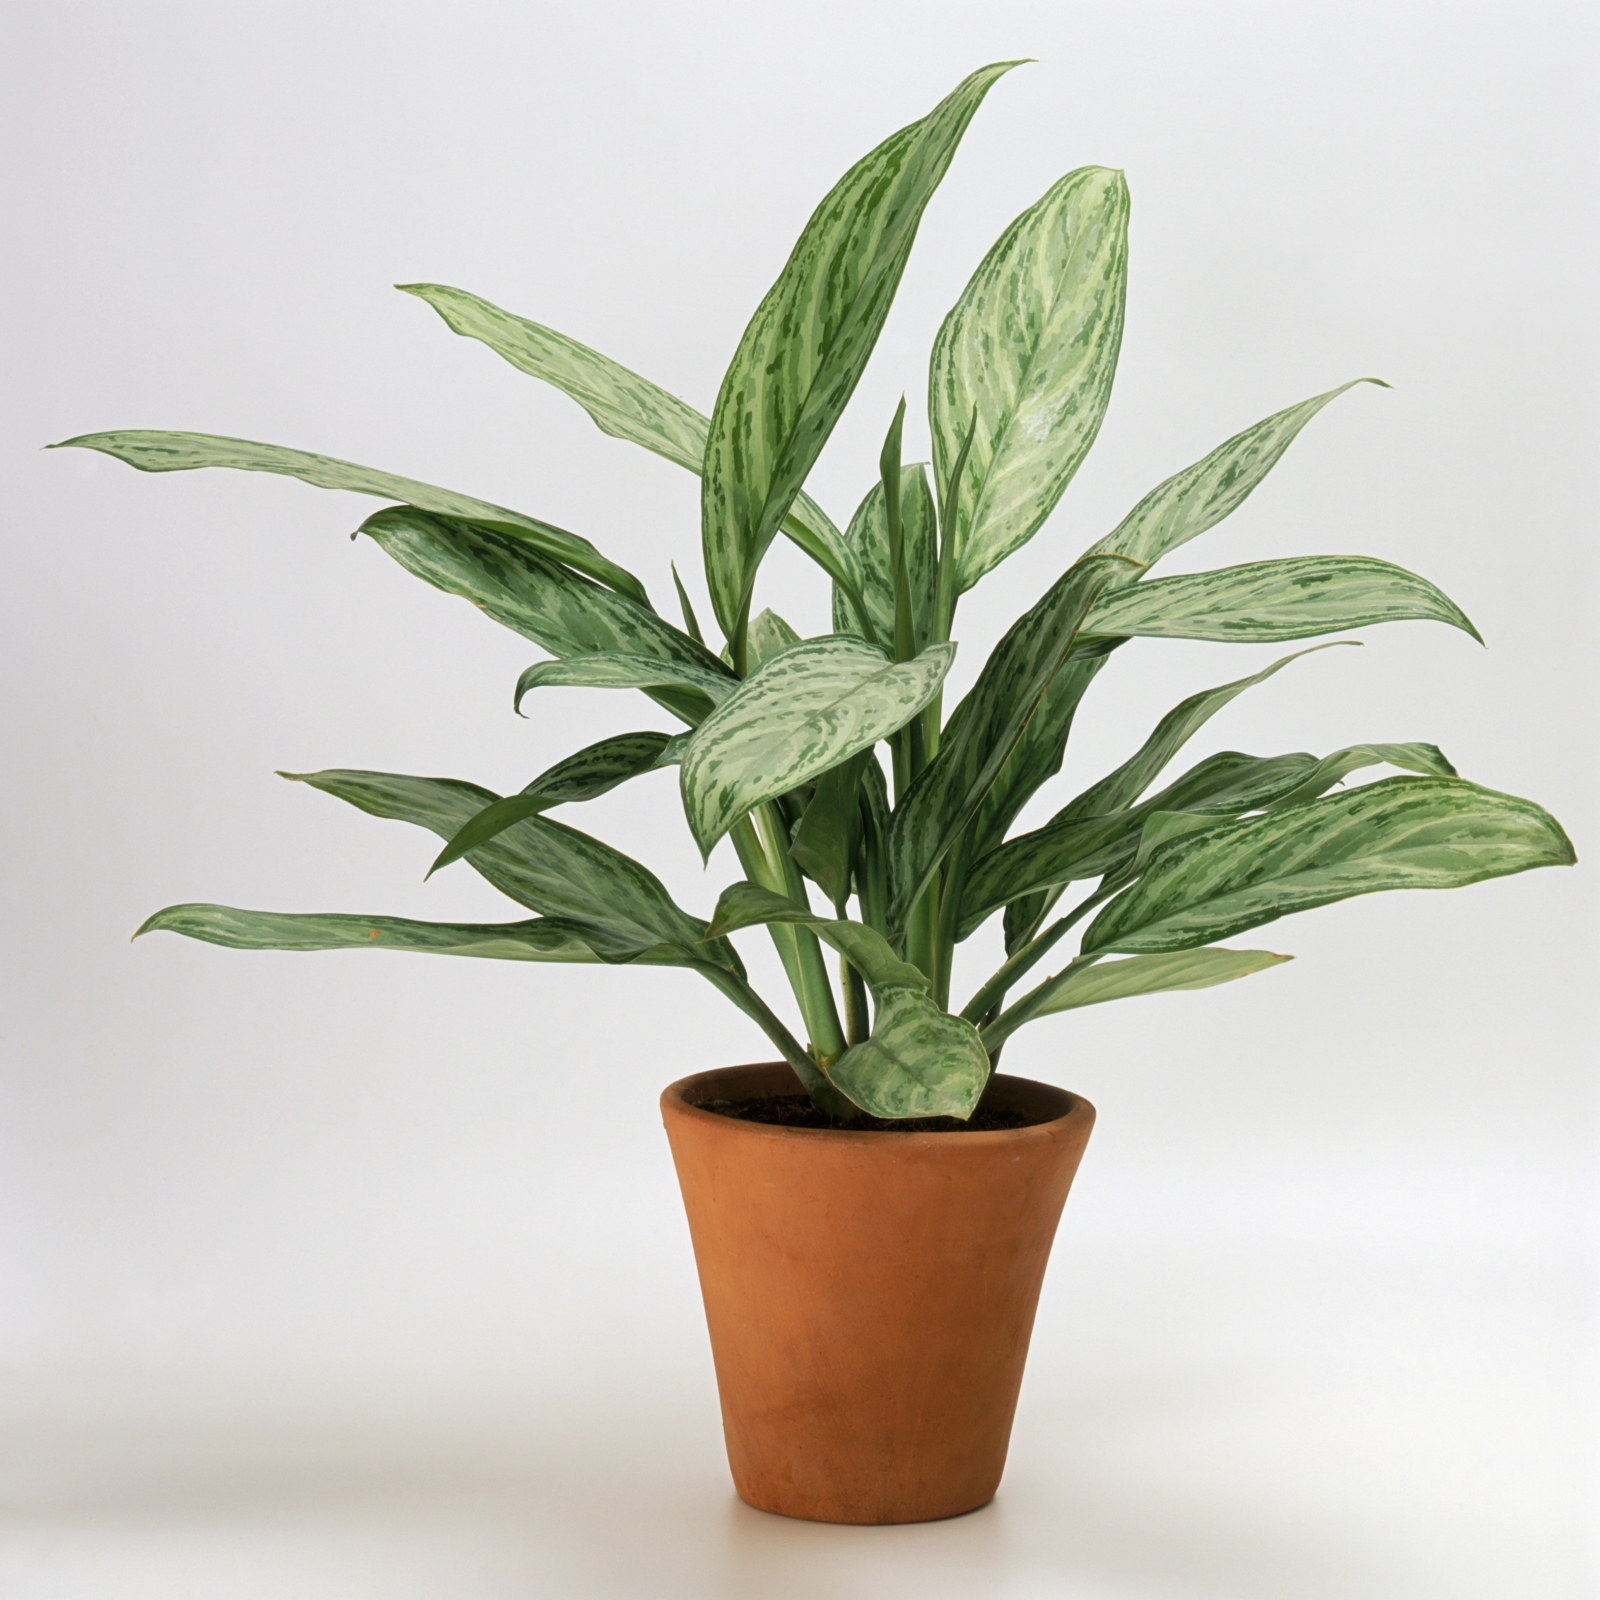 Indoor Plants Grown In Water: Houseplants That Don't Need Much Water